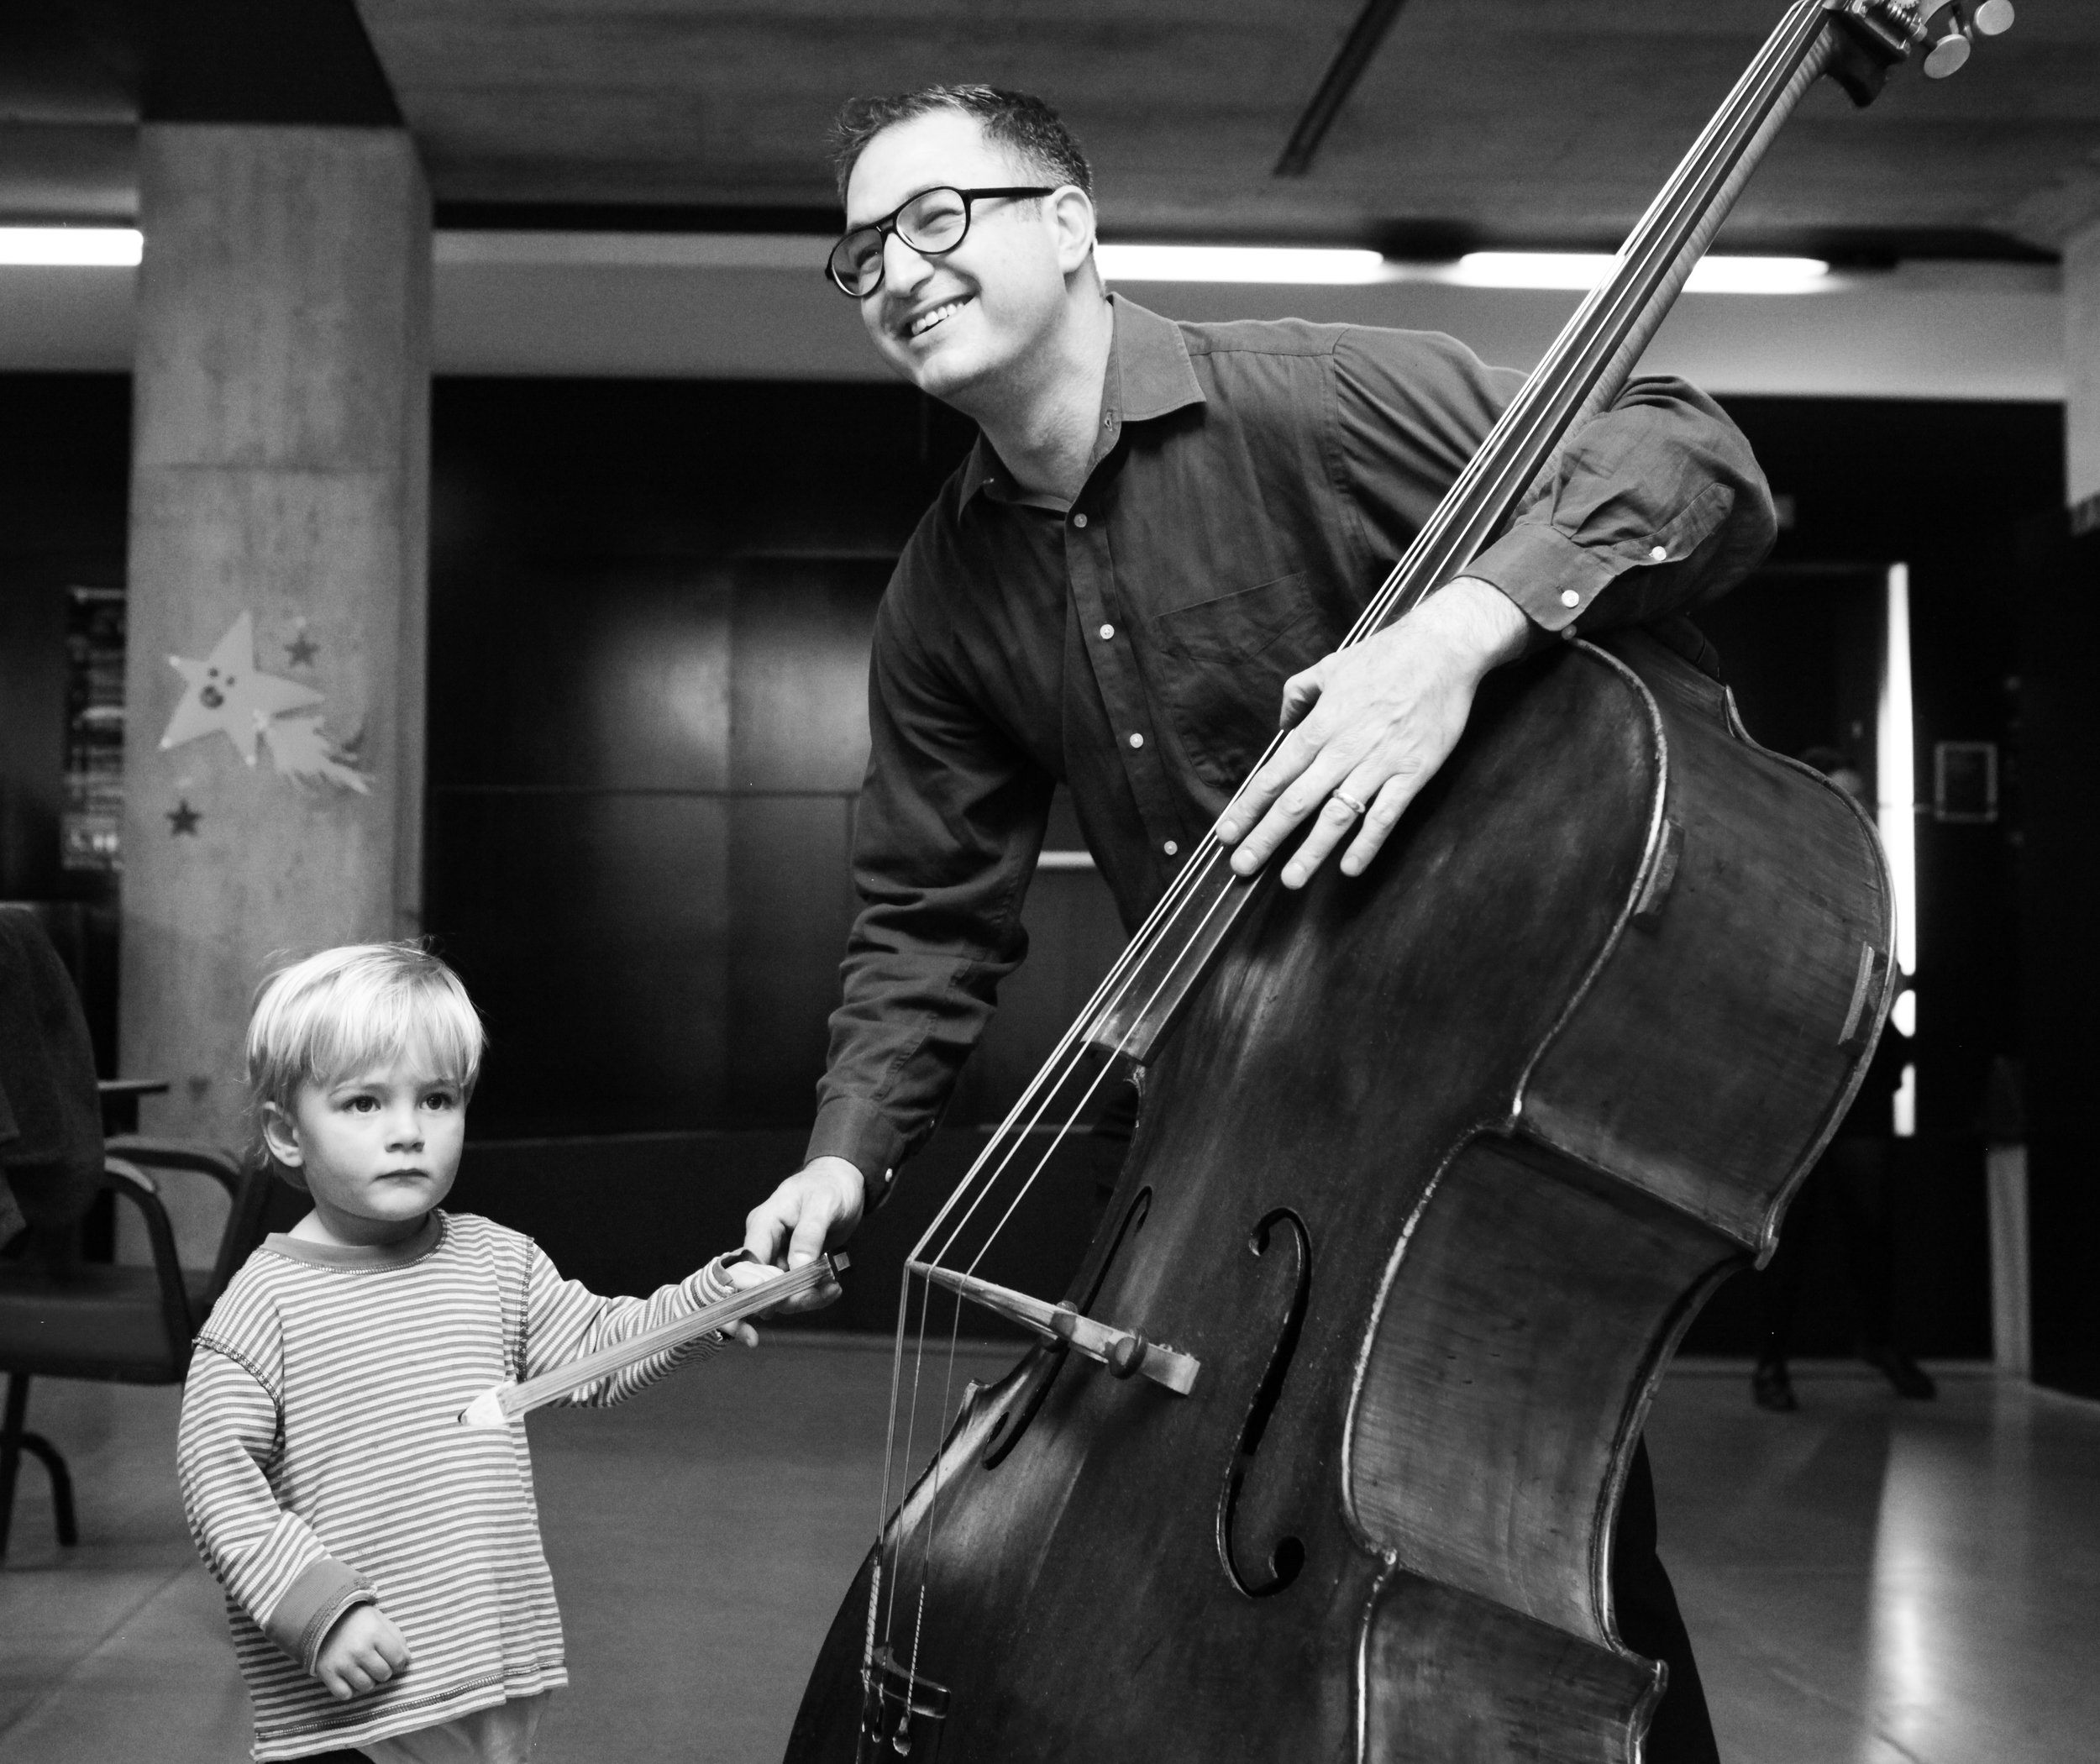 Bass Reuven with Child Playing 5.jpg